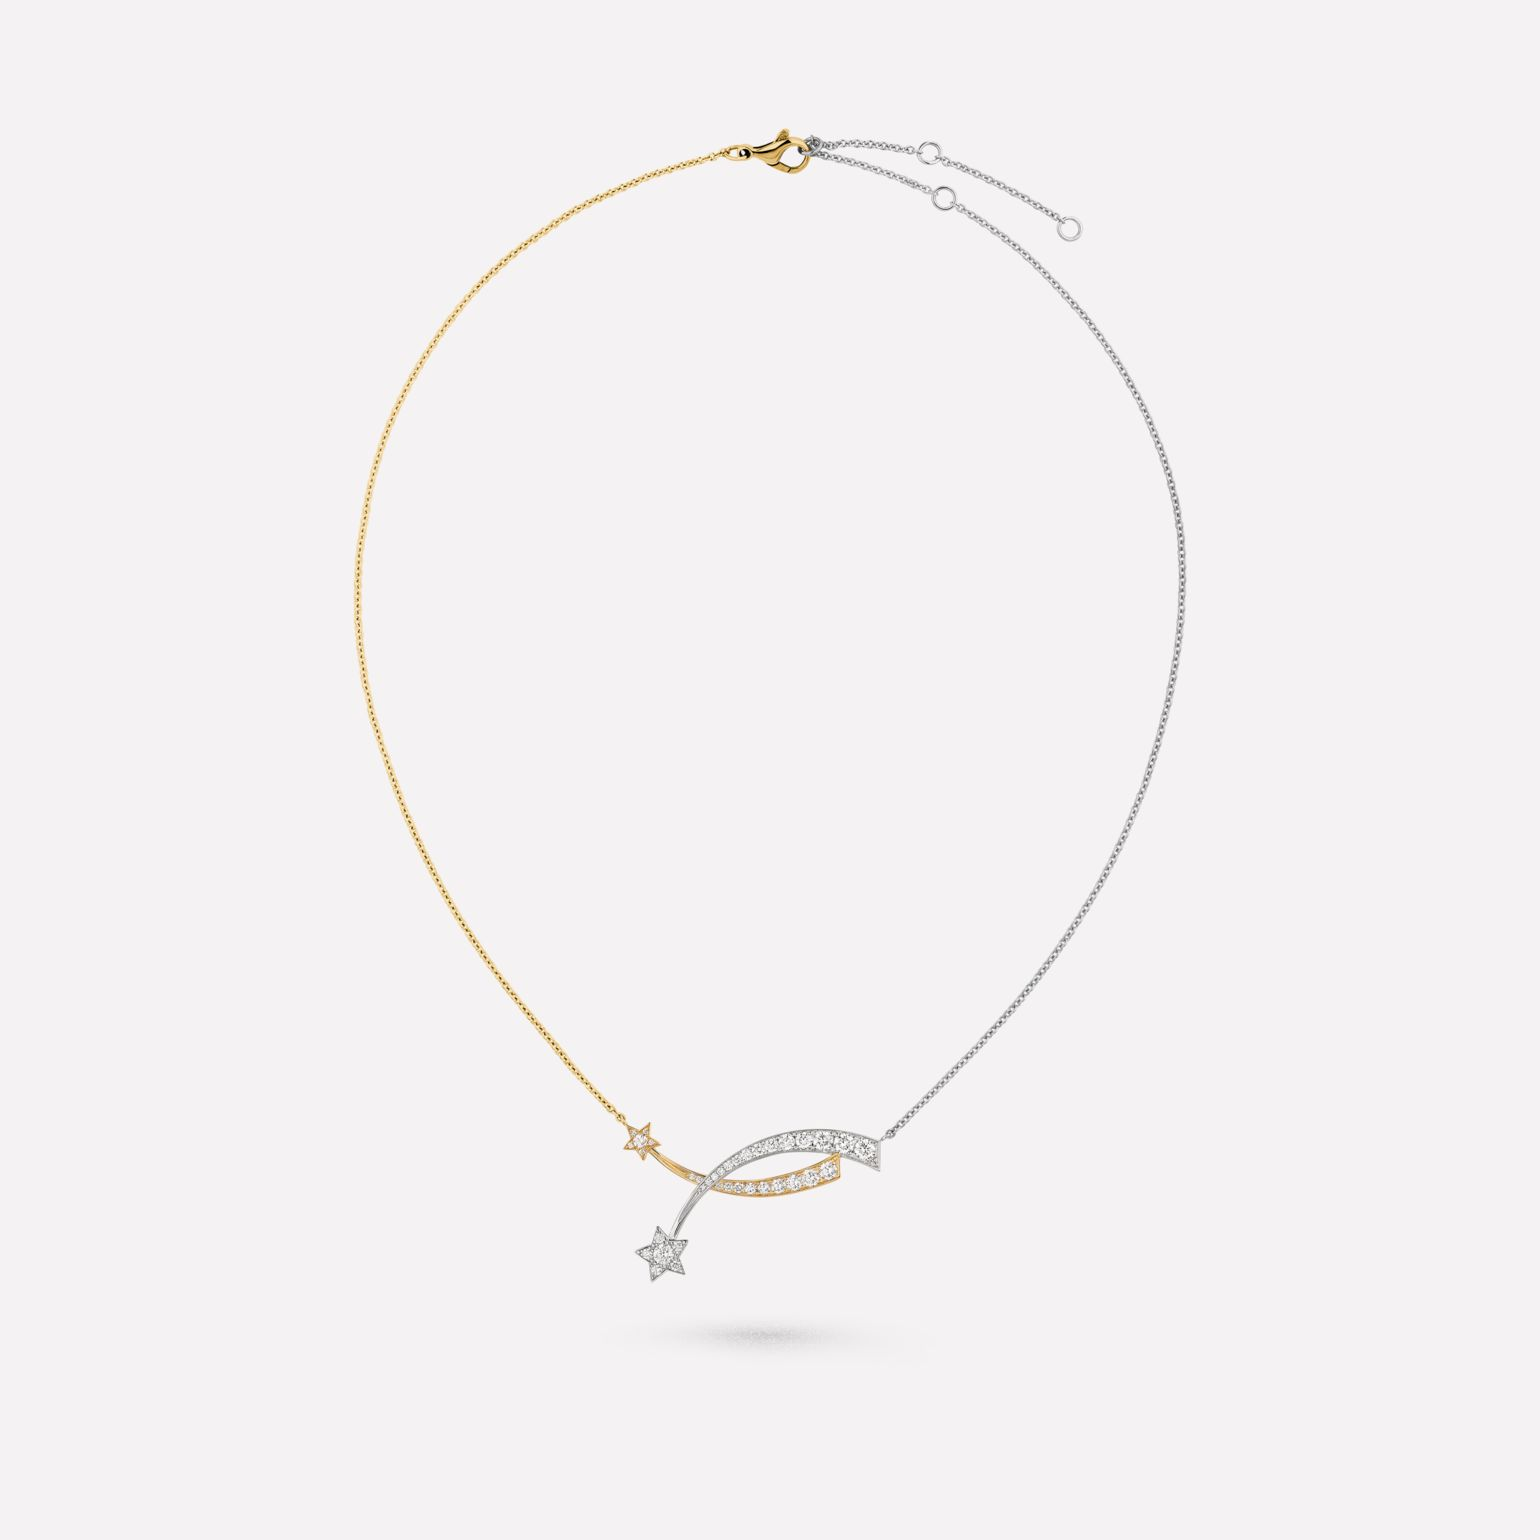 Étoile Filante necklace 18K white and yellow gold, diamonds